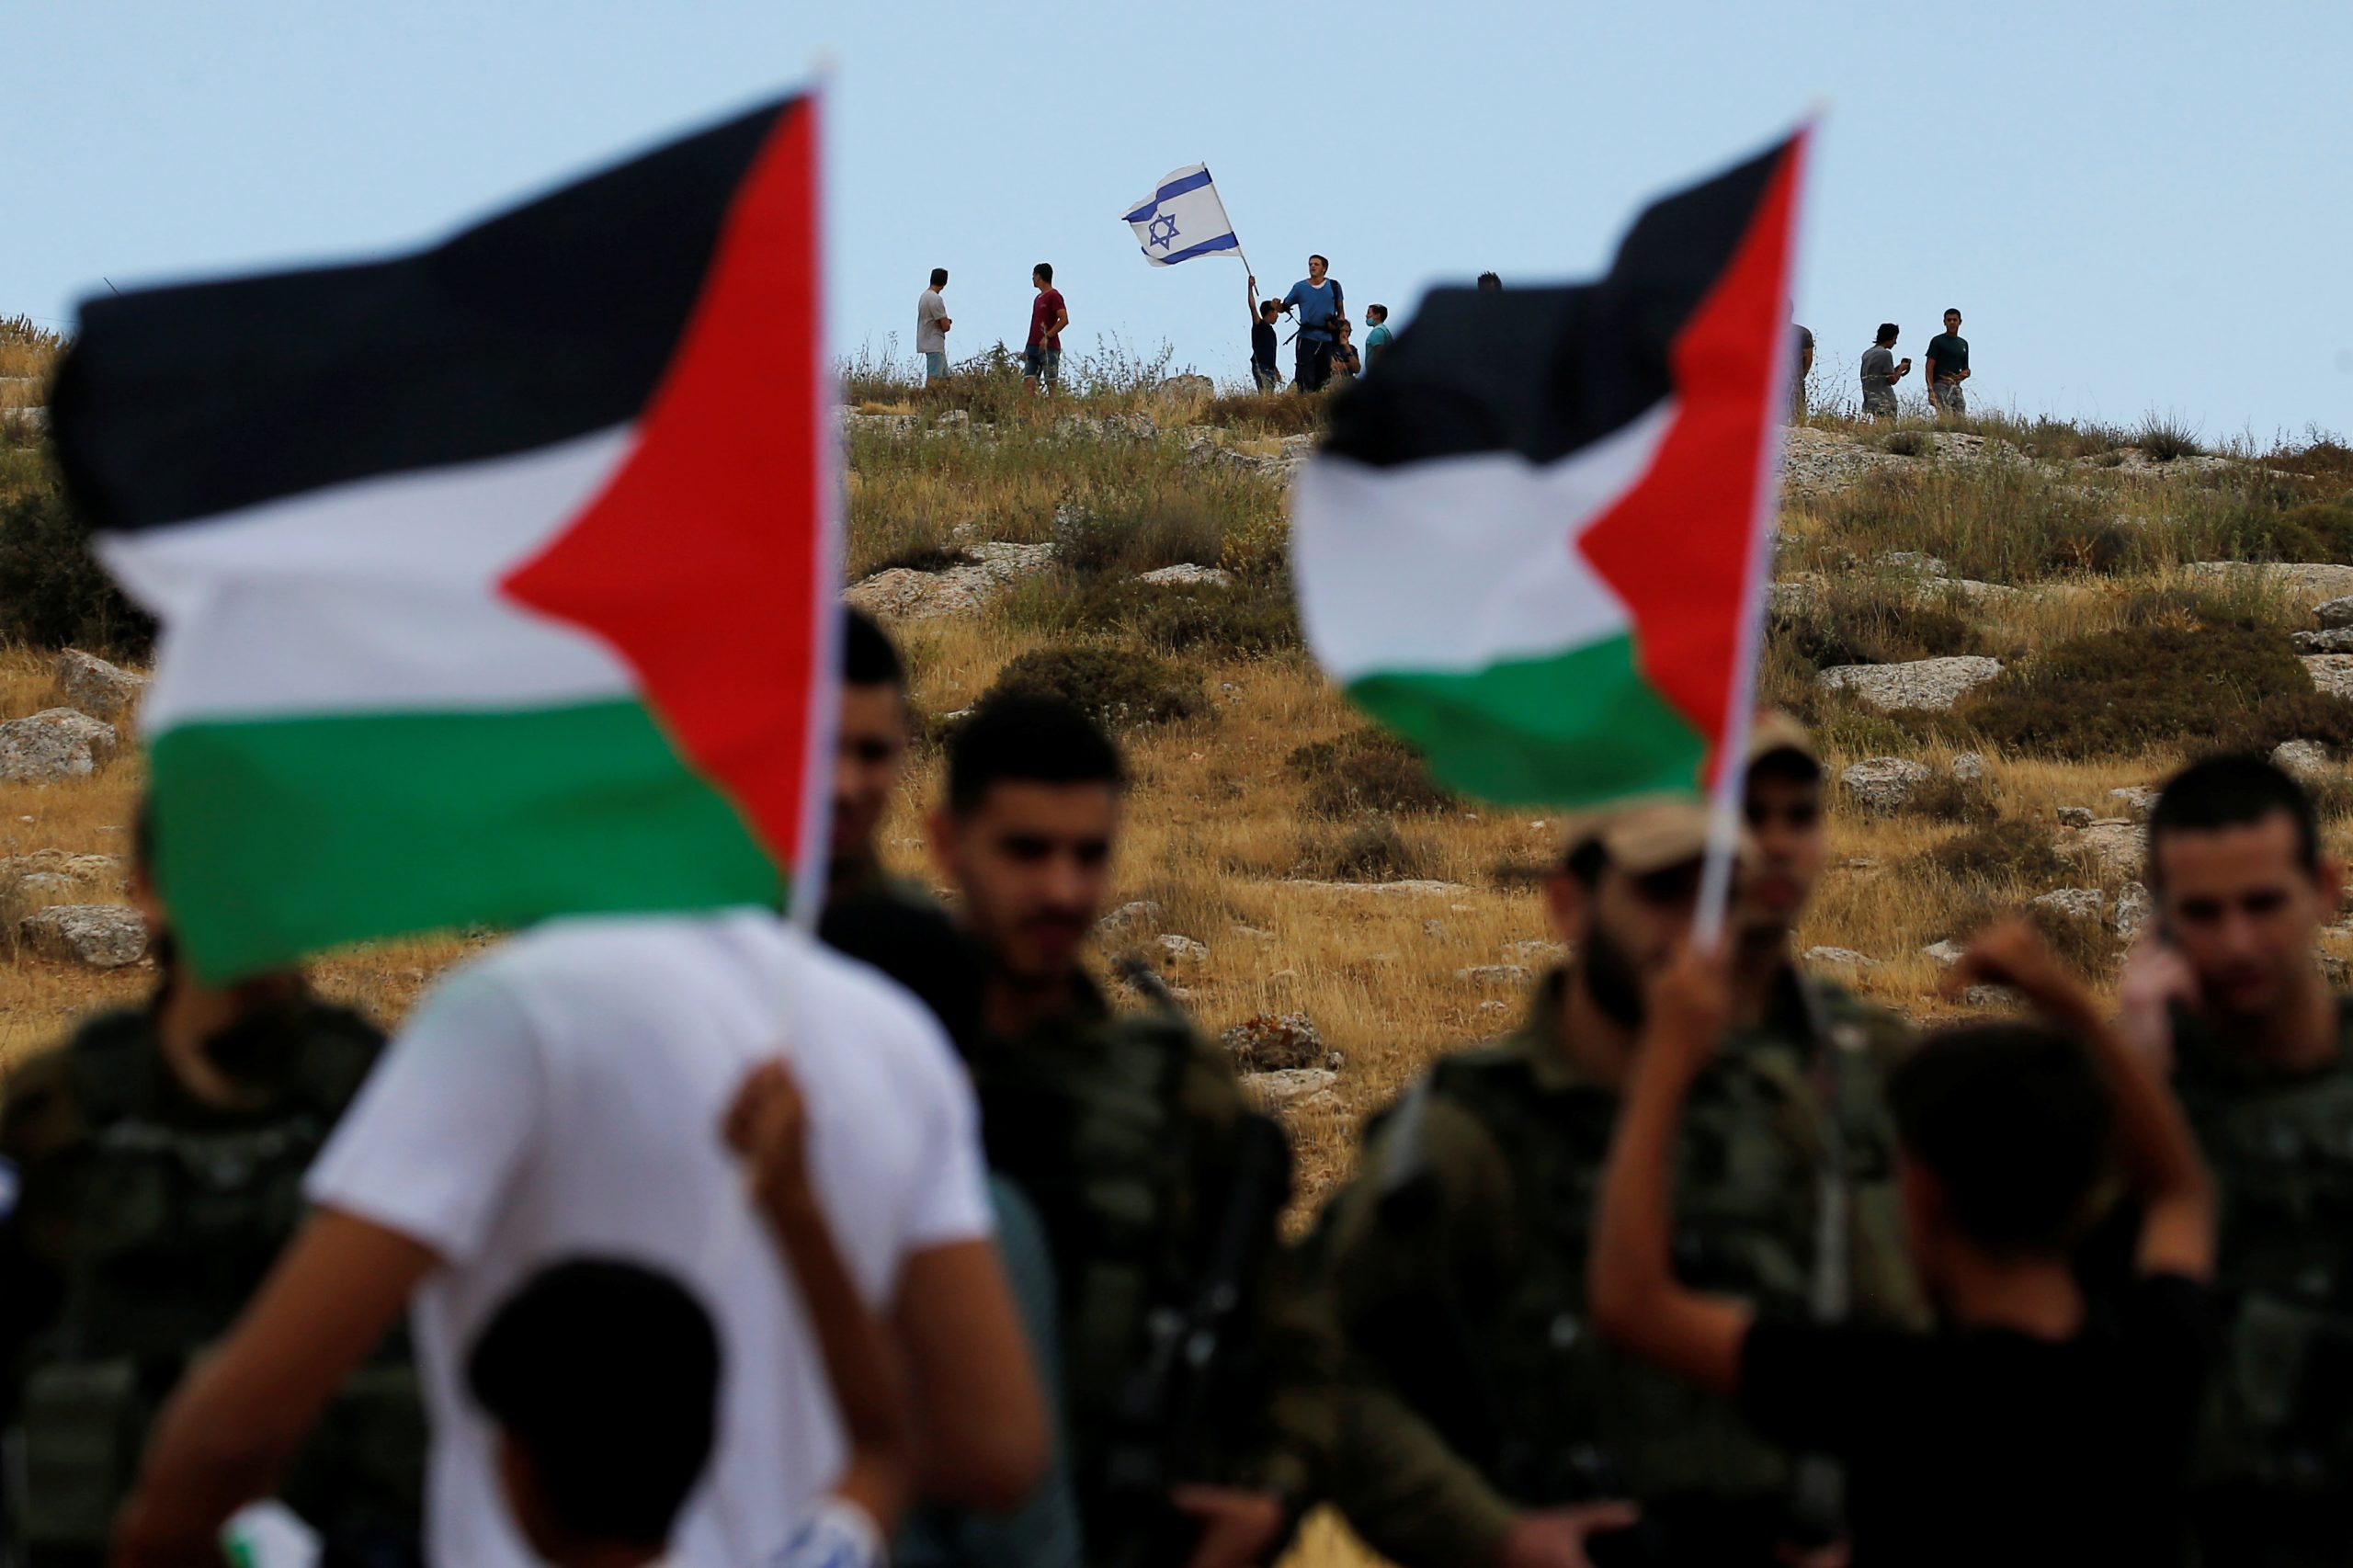 A Jewish settler holds an Israeli flag as Palestinians argue with Israeli soldiers during a protest against Israel's plan to annex parts of the occupied West Bank, in Susya village south of Heron June 19, 2020. REUTERS/Mussa Qawasma - RC2BCH9JZFXN